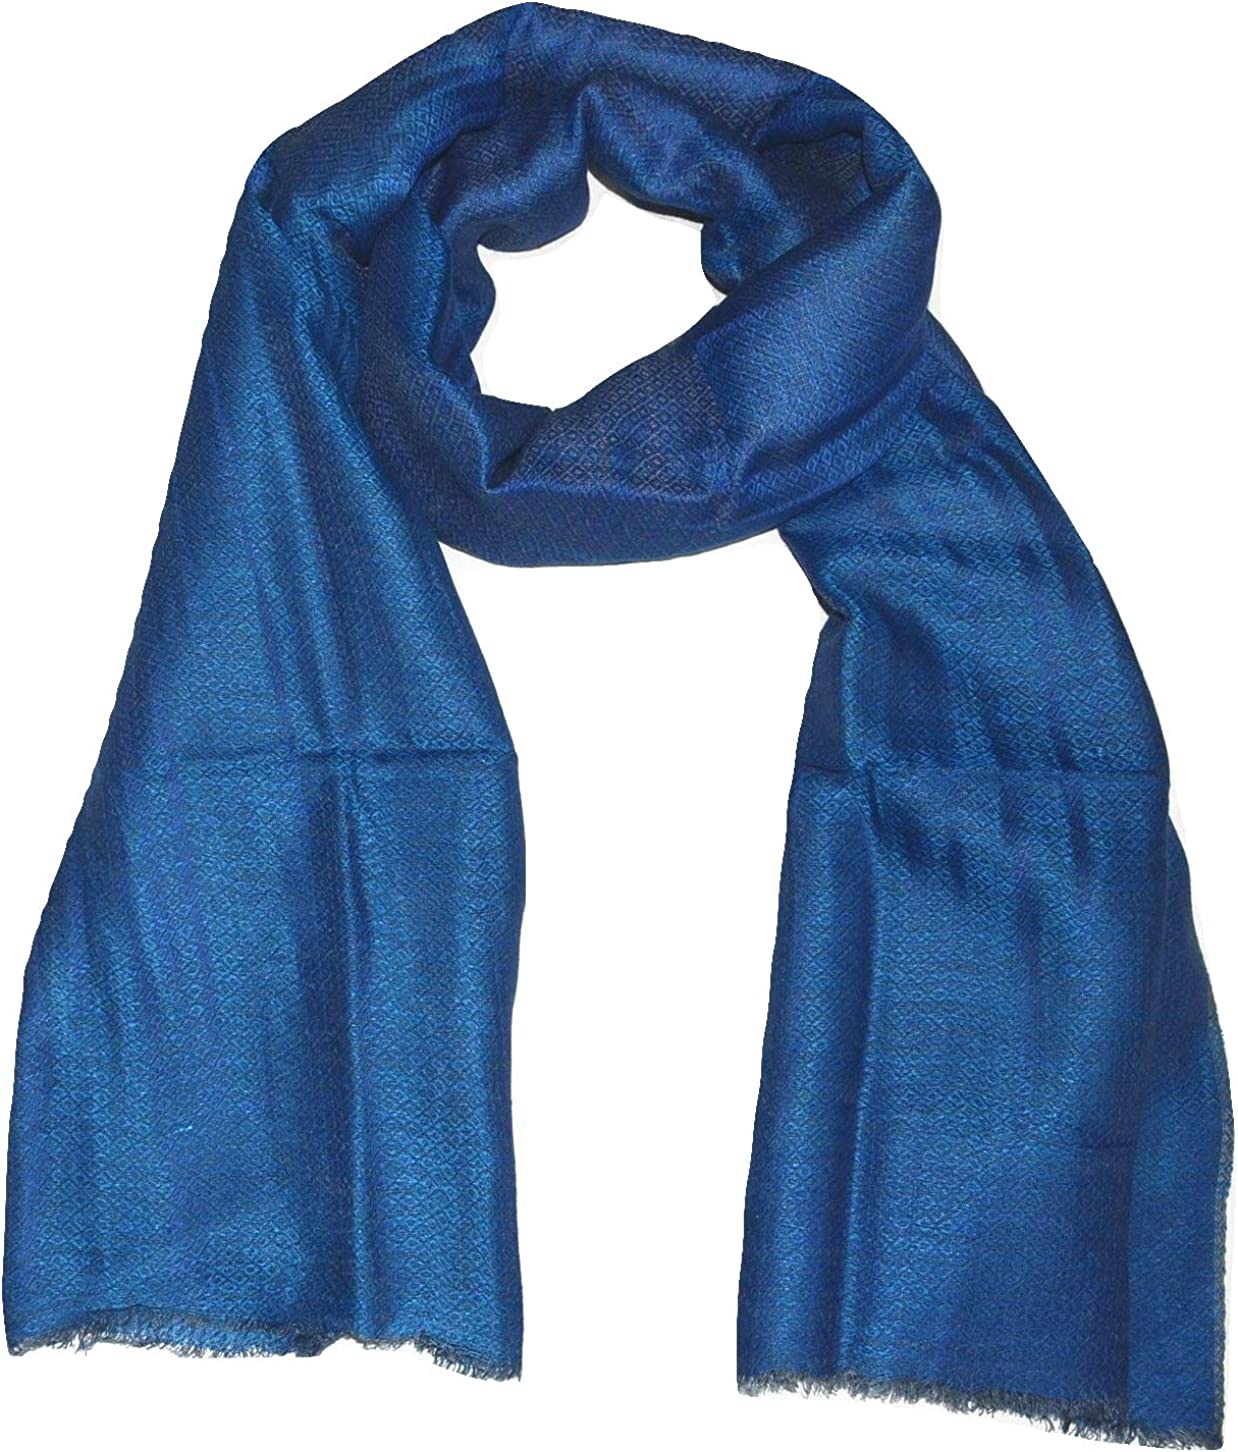 Linen Scarf, Two Tone Diamond Weave, Fluffy, Soft, Airy, Large, All Weather Linen Scarf.